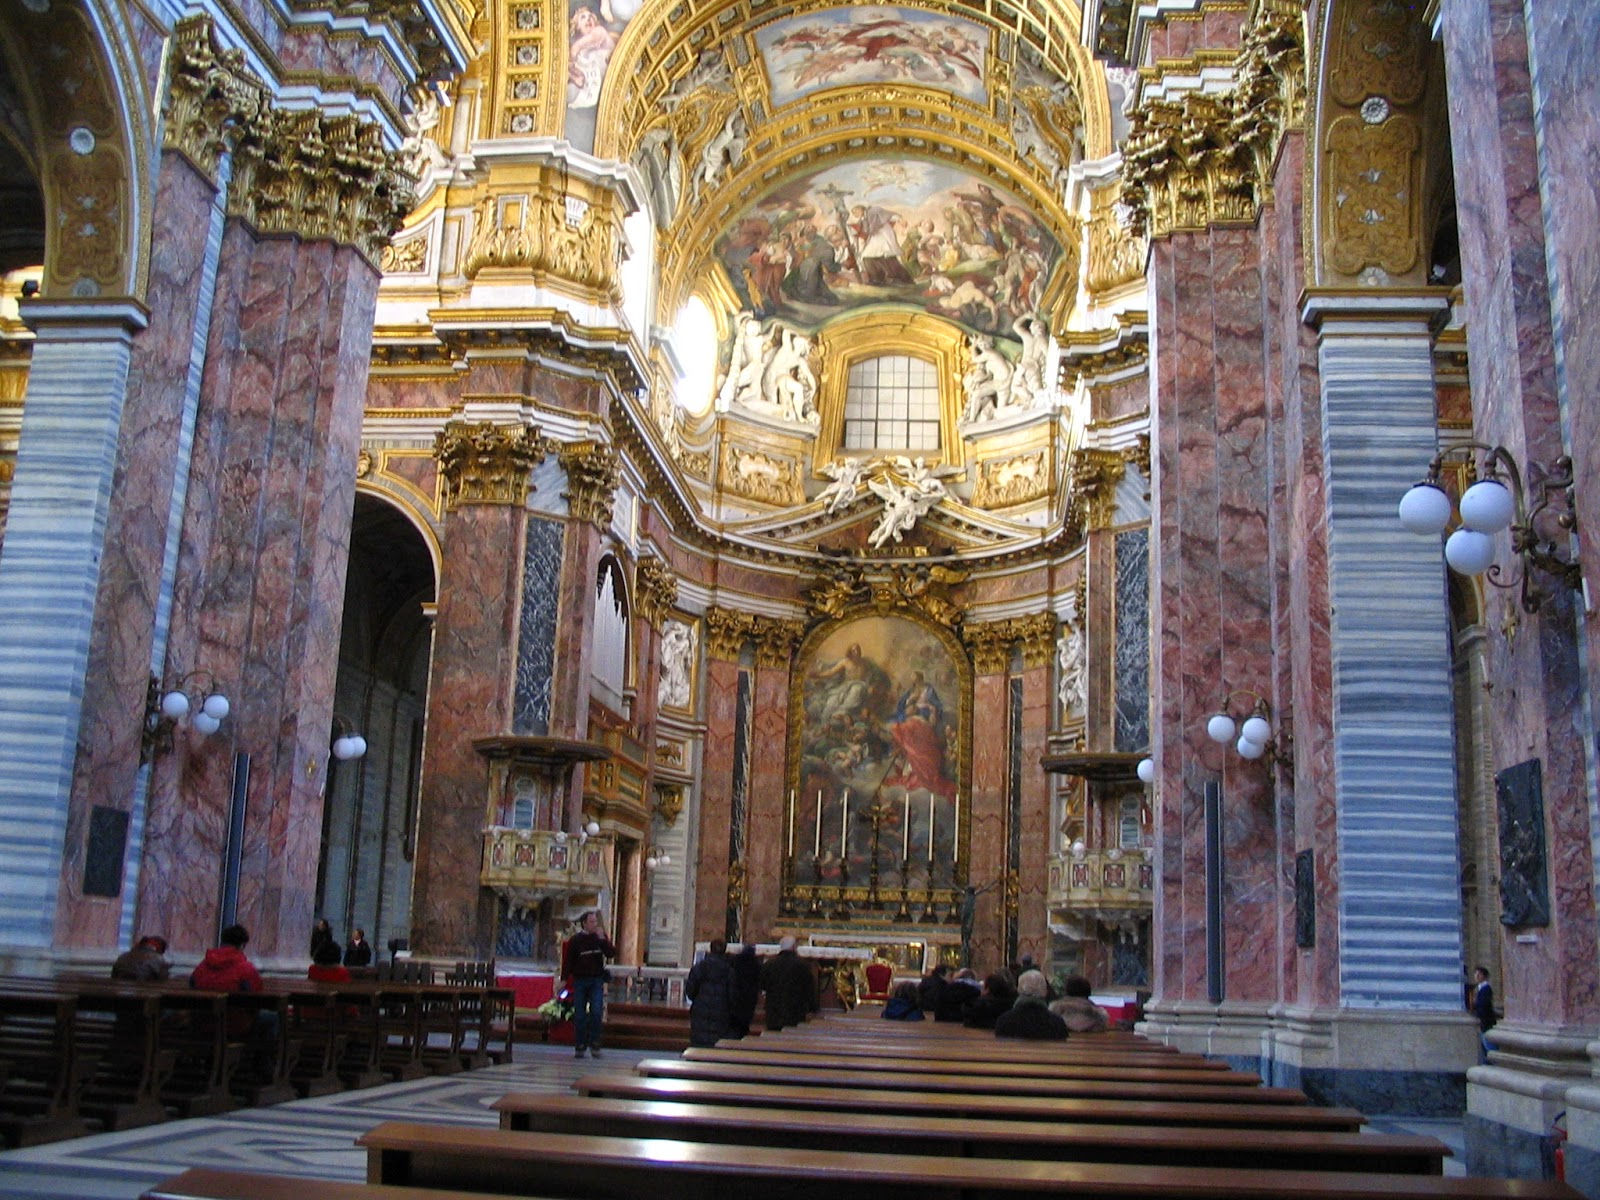 The interior of a church in Rome